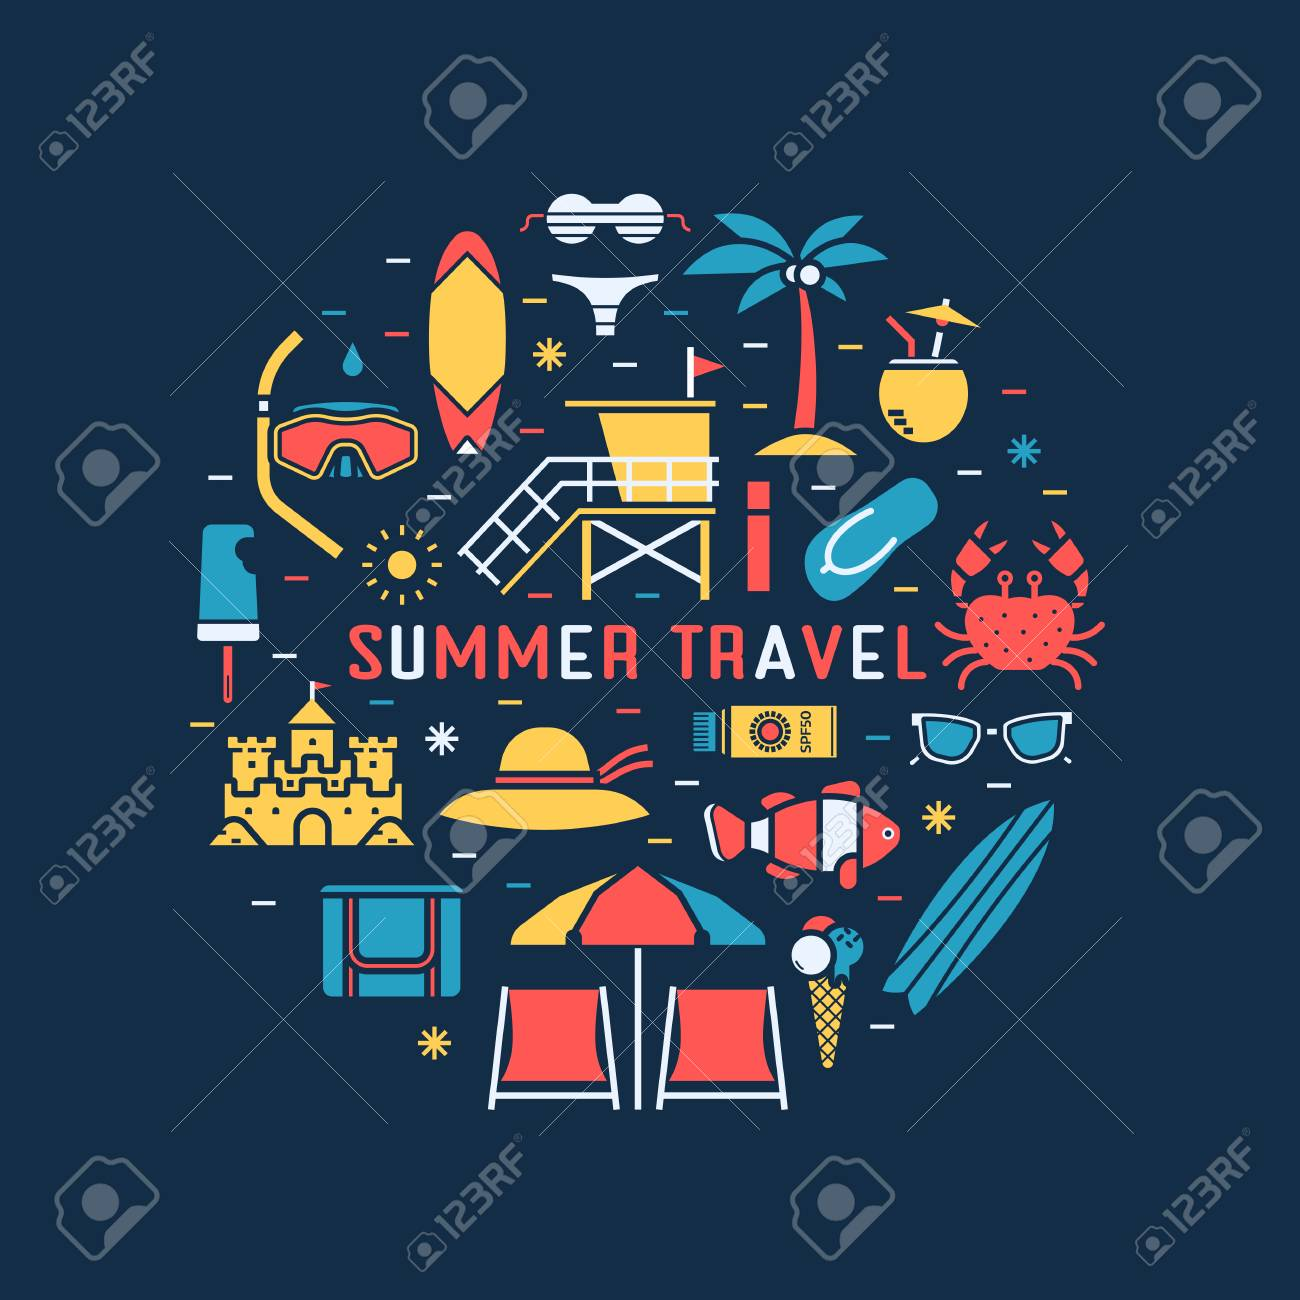 Summer travel concept background with sea beach icons in circle. Summertime tropical holidays collection in linear style. Sunbathing accessories and beach activity elements vector illustration. Foto de archivo - 79166229